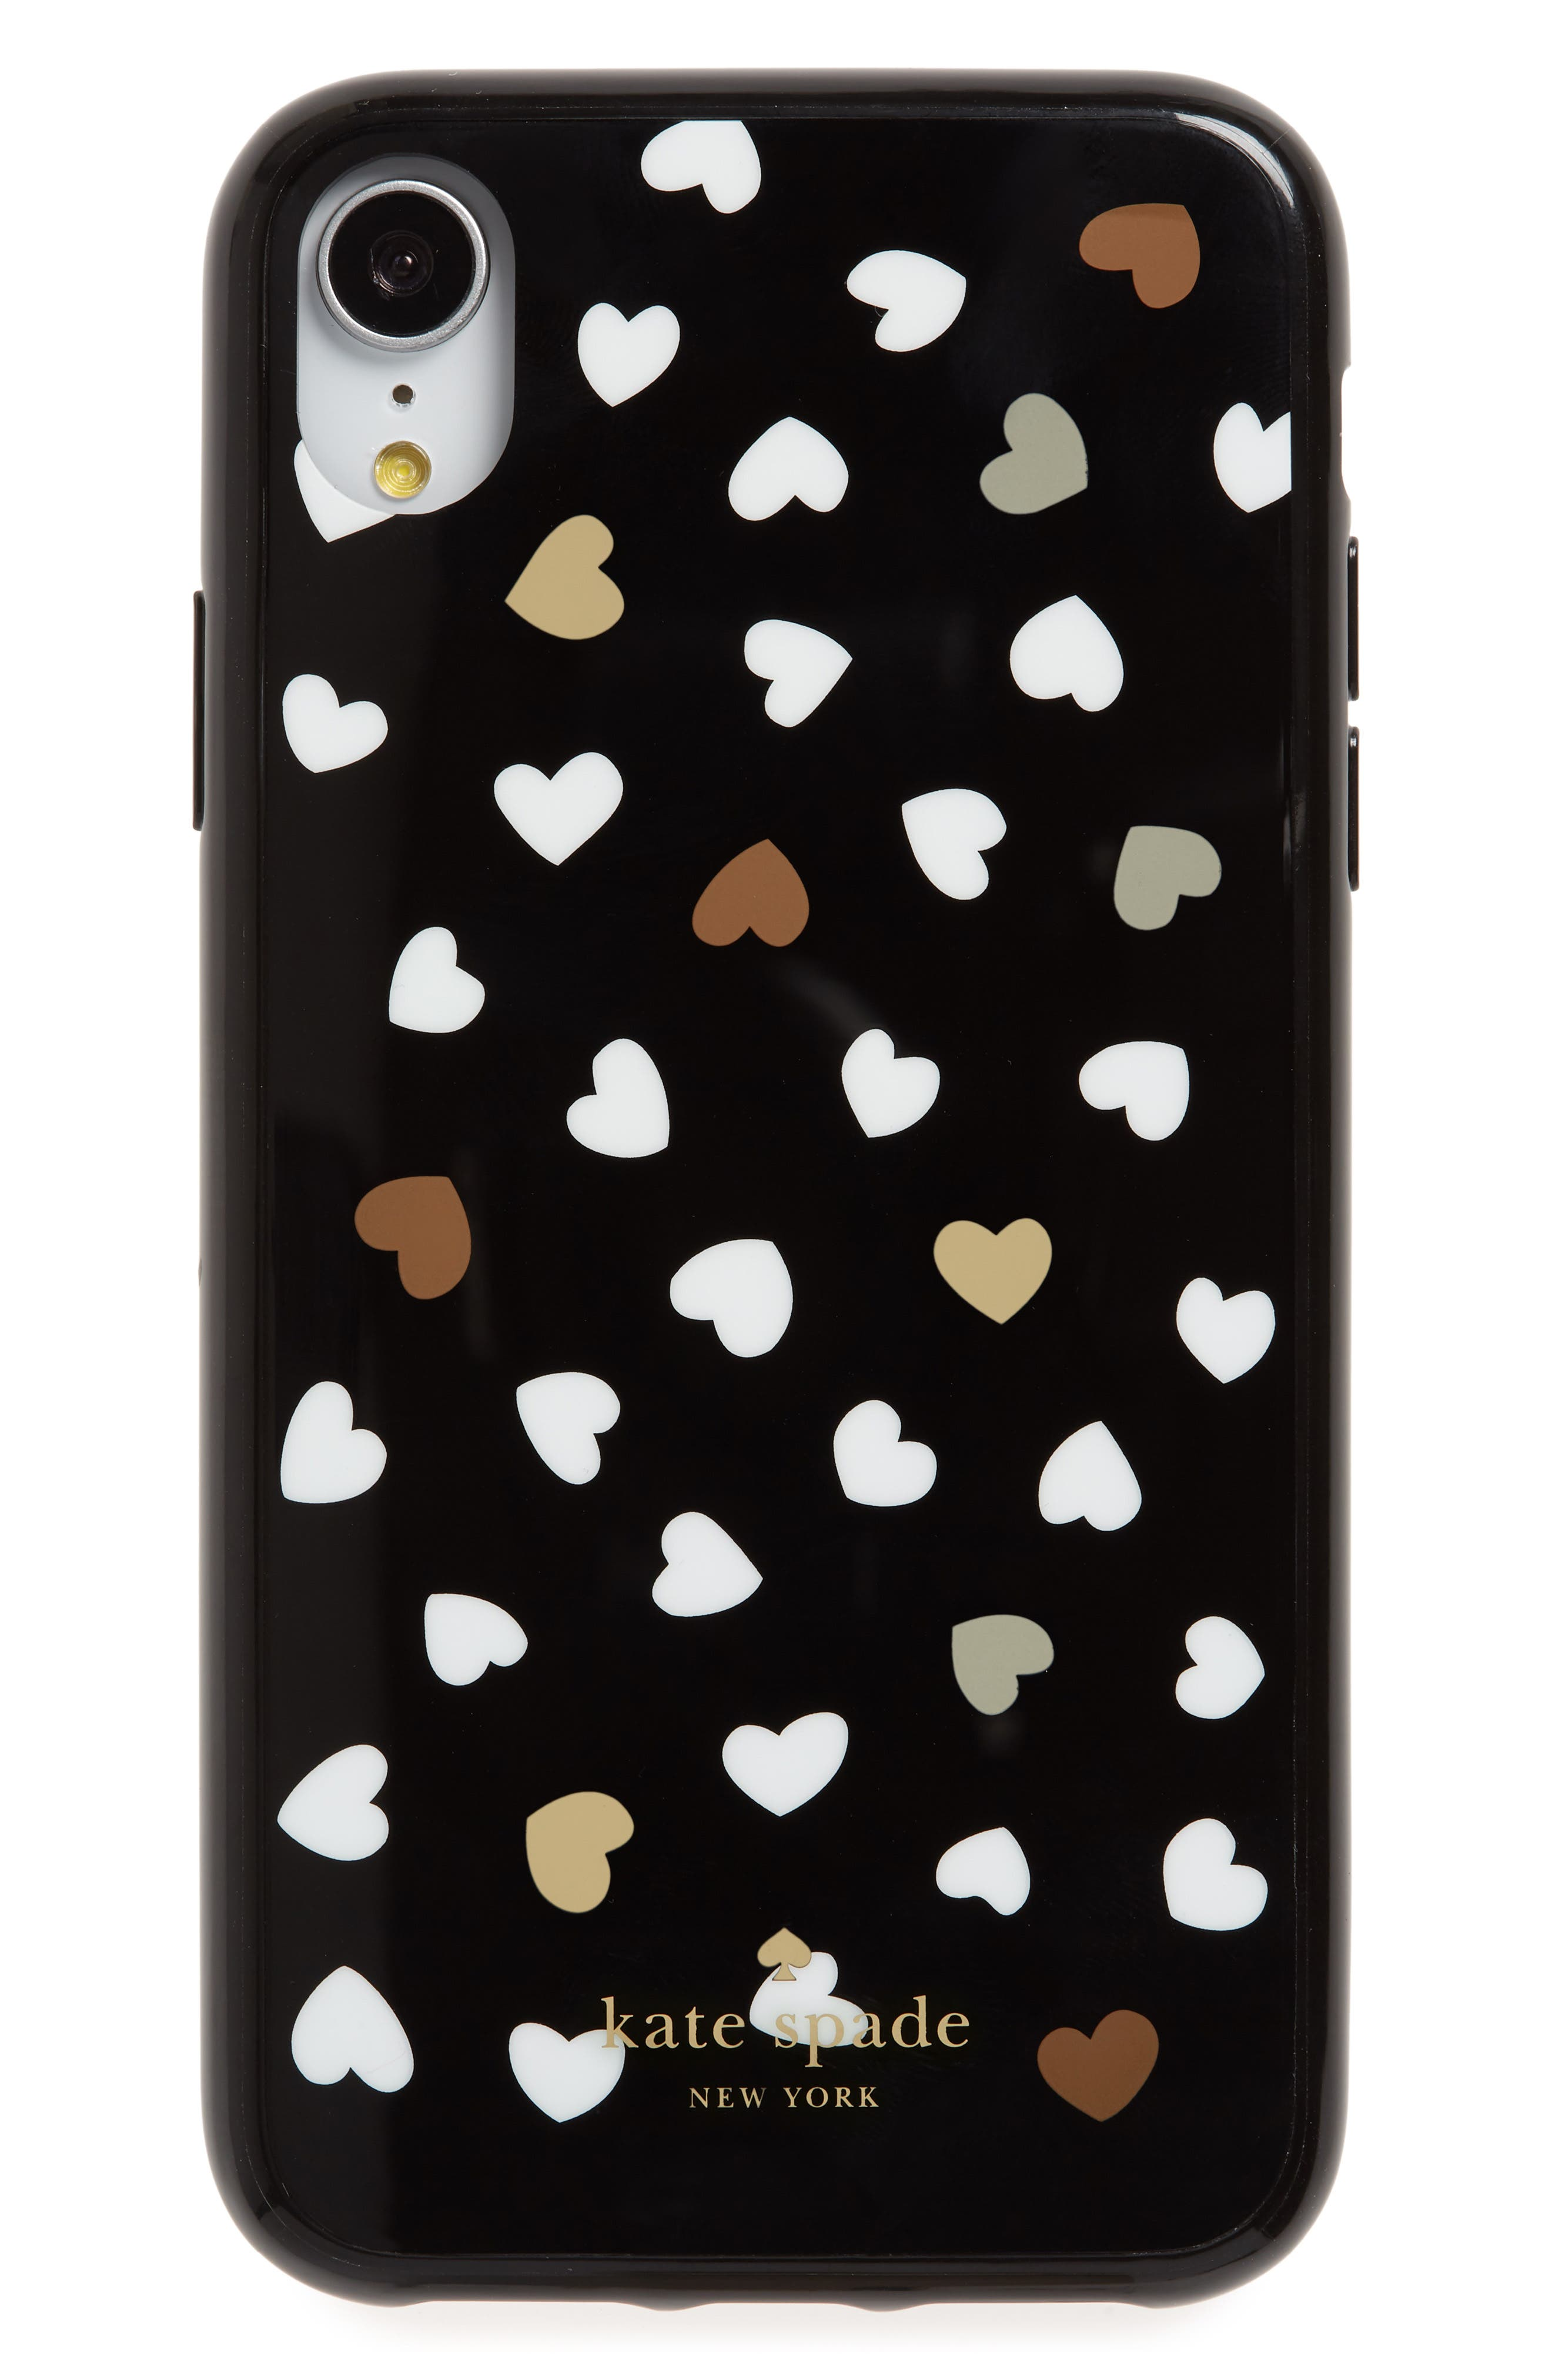 KATE SPADE NEW YORK heartbeat iPhone X/Xs/XR & Xs Max case, Main, color, 001